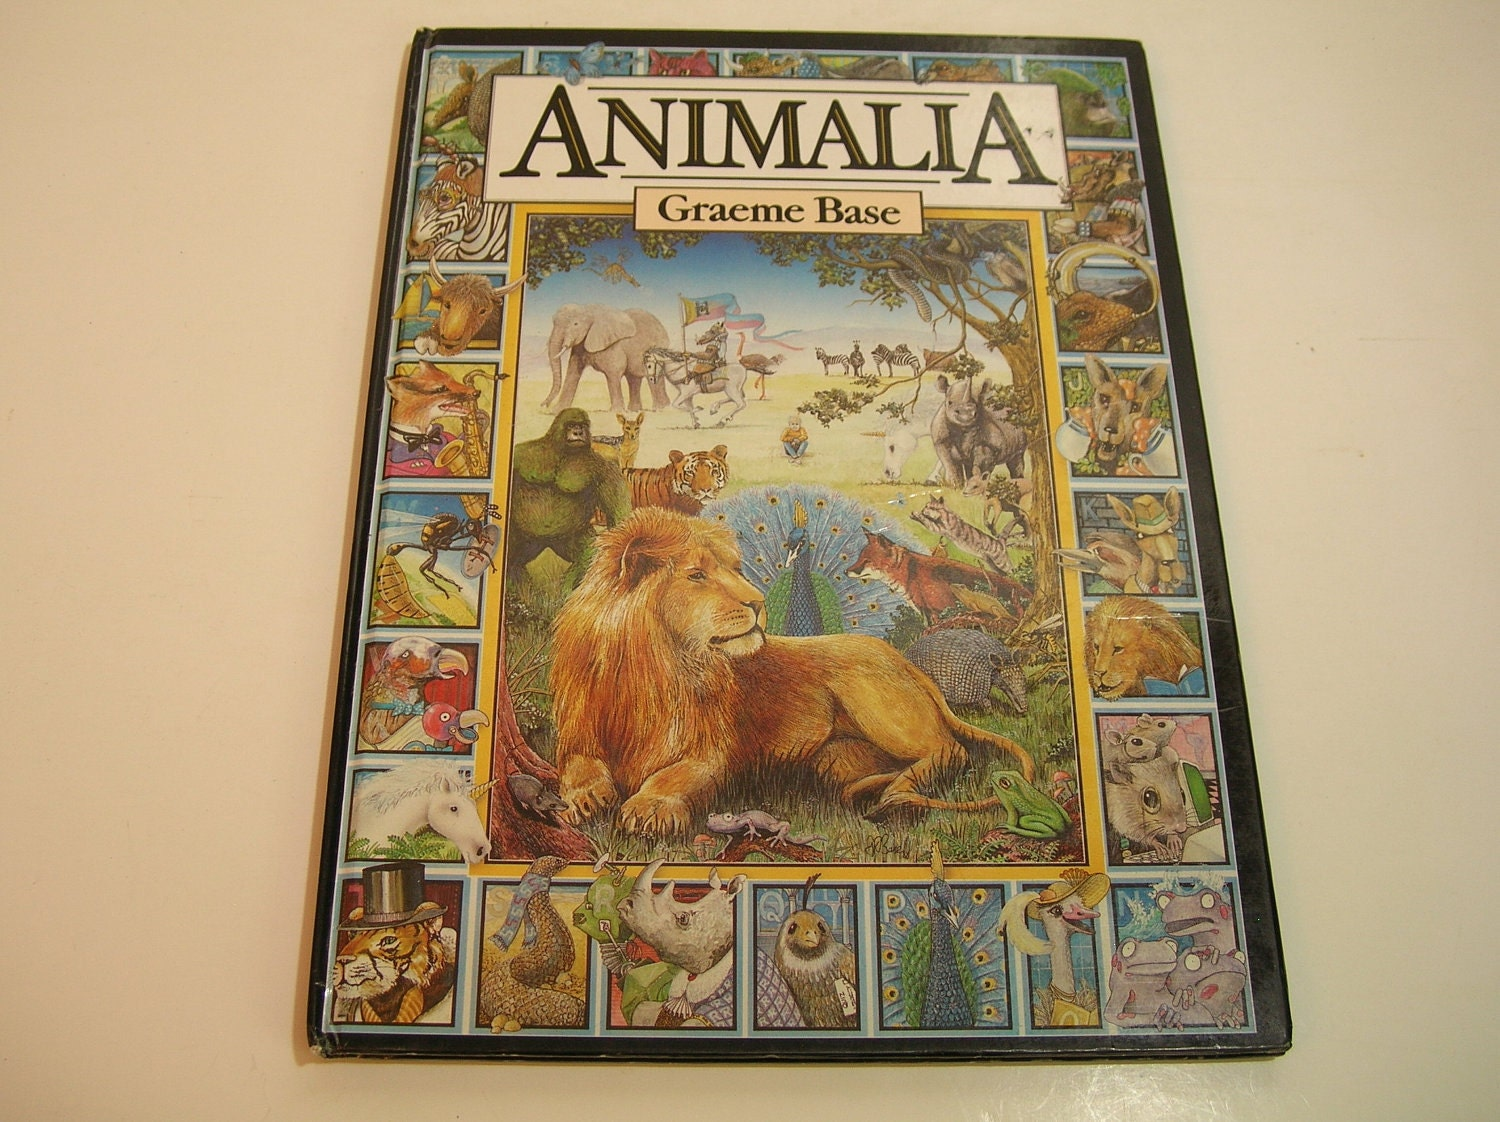 Graeme Base S Animalia Vintage Book